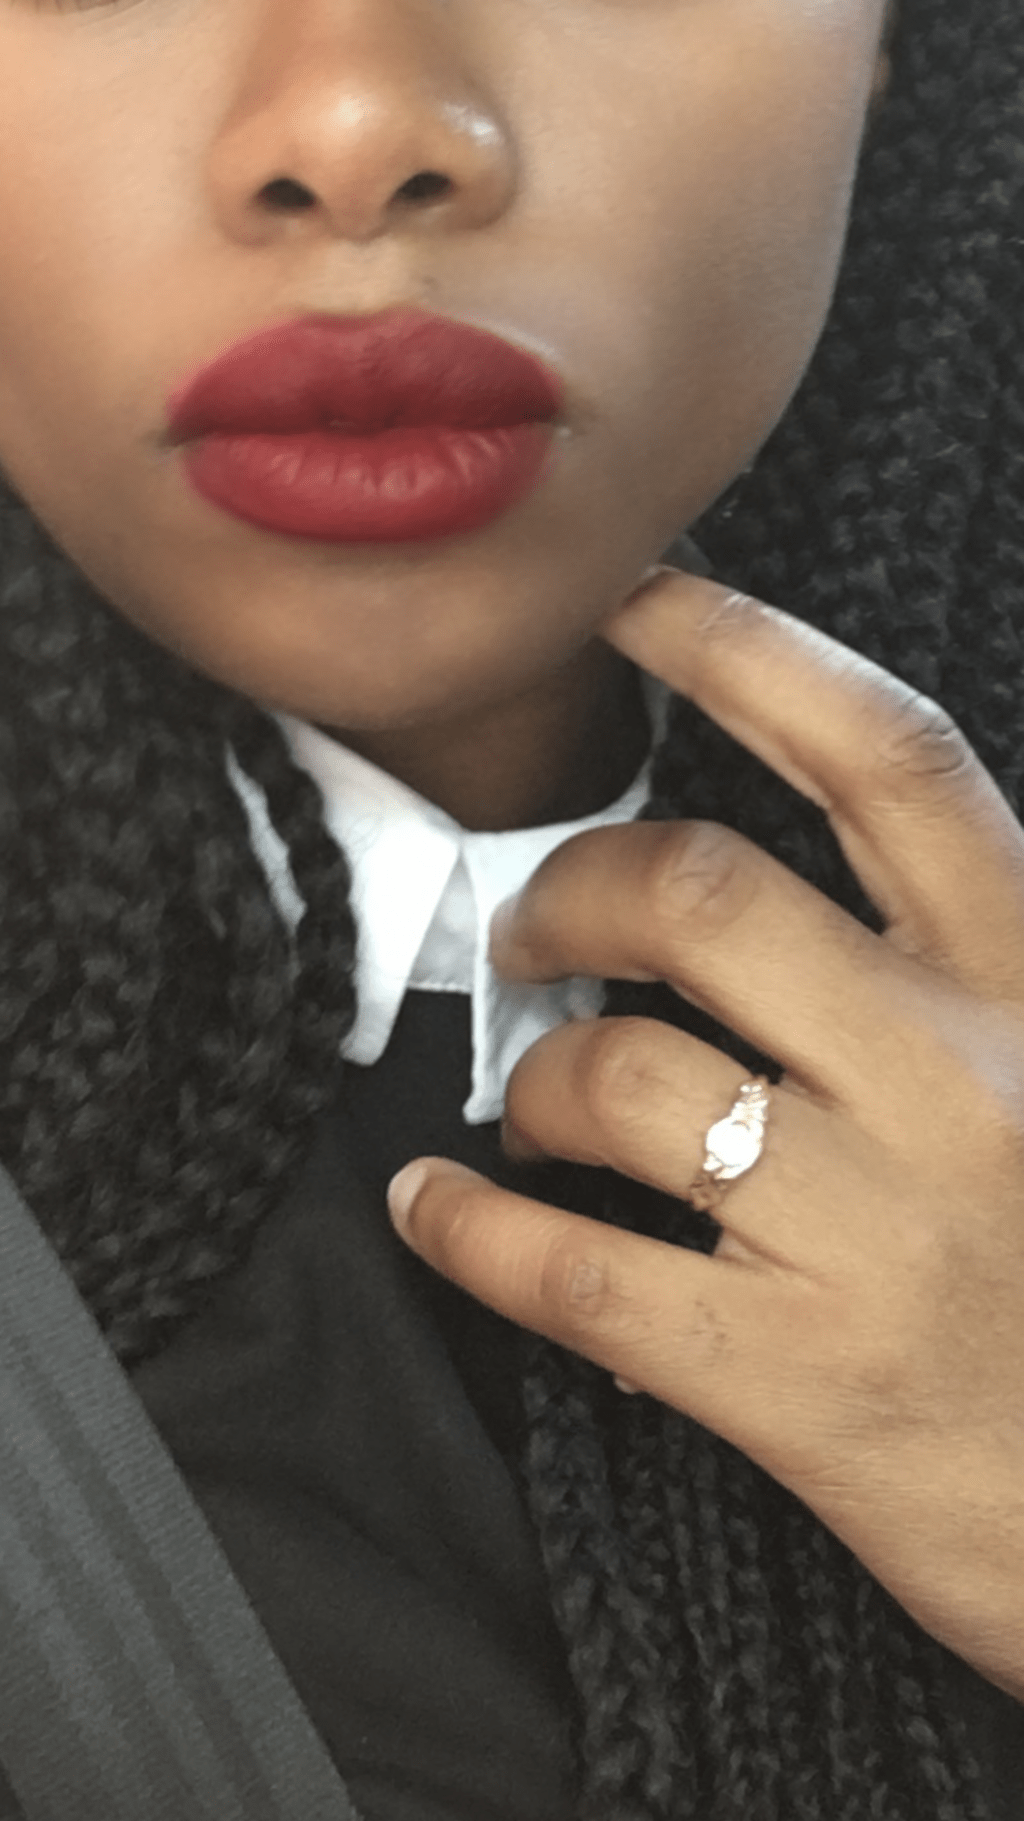 One Thousand Engagement Rings;A Saga.